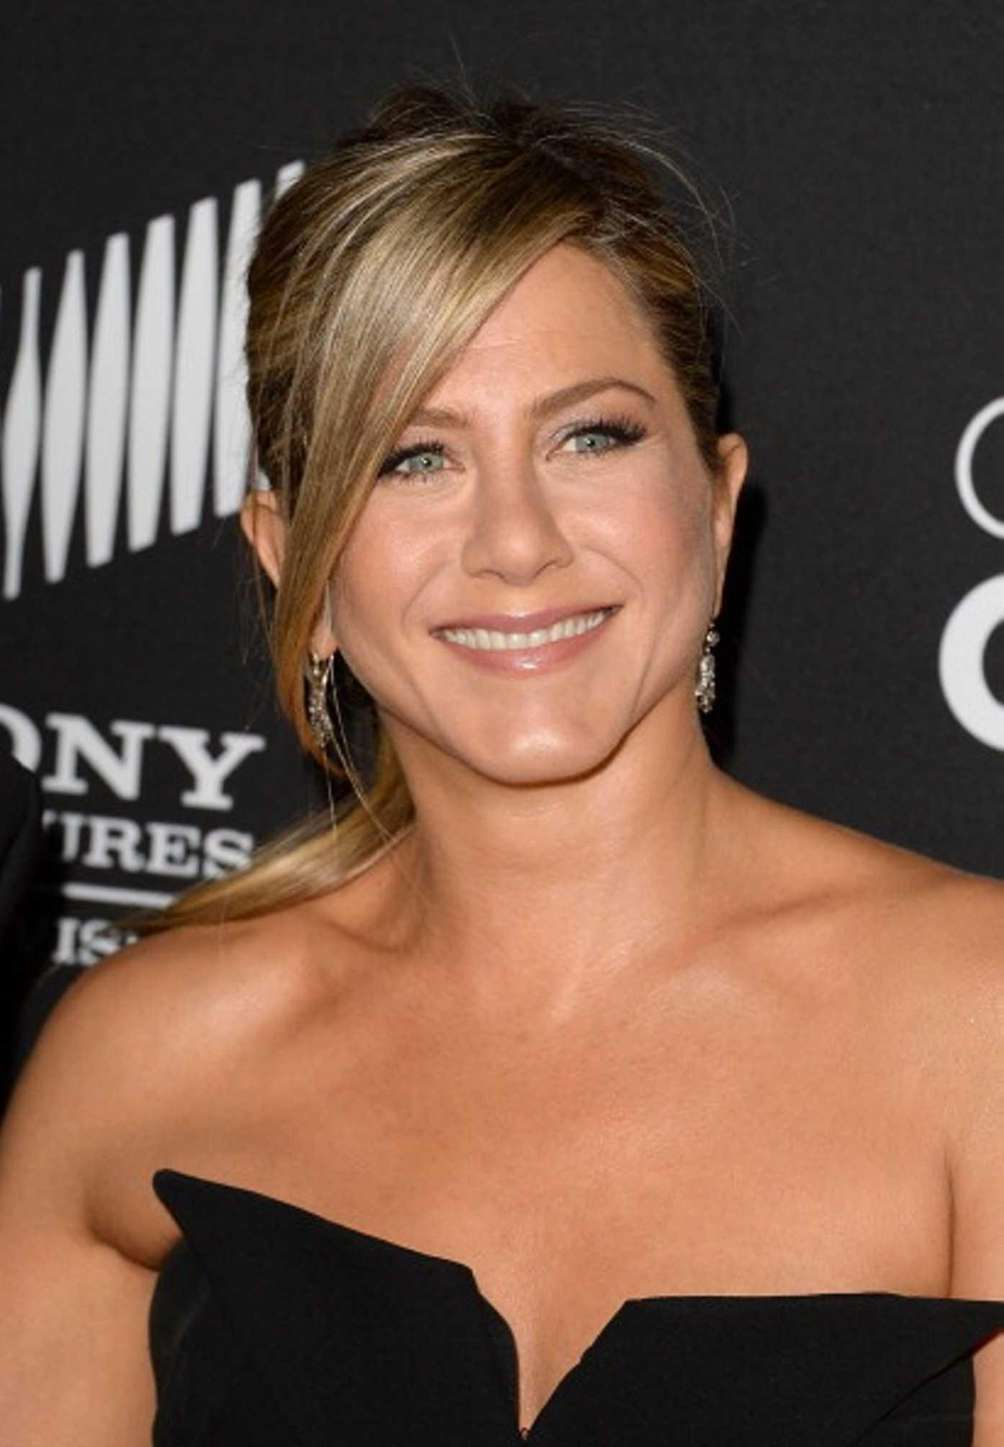 Jennifer Aniston attends the premiere of Lifetime's